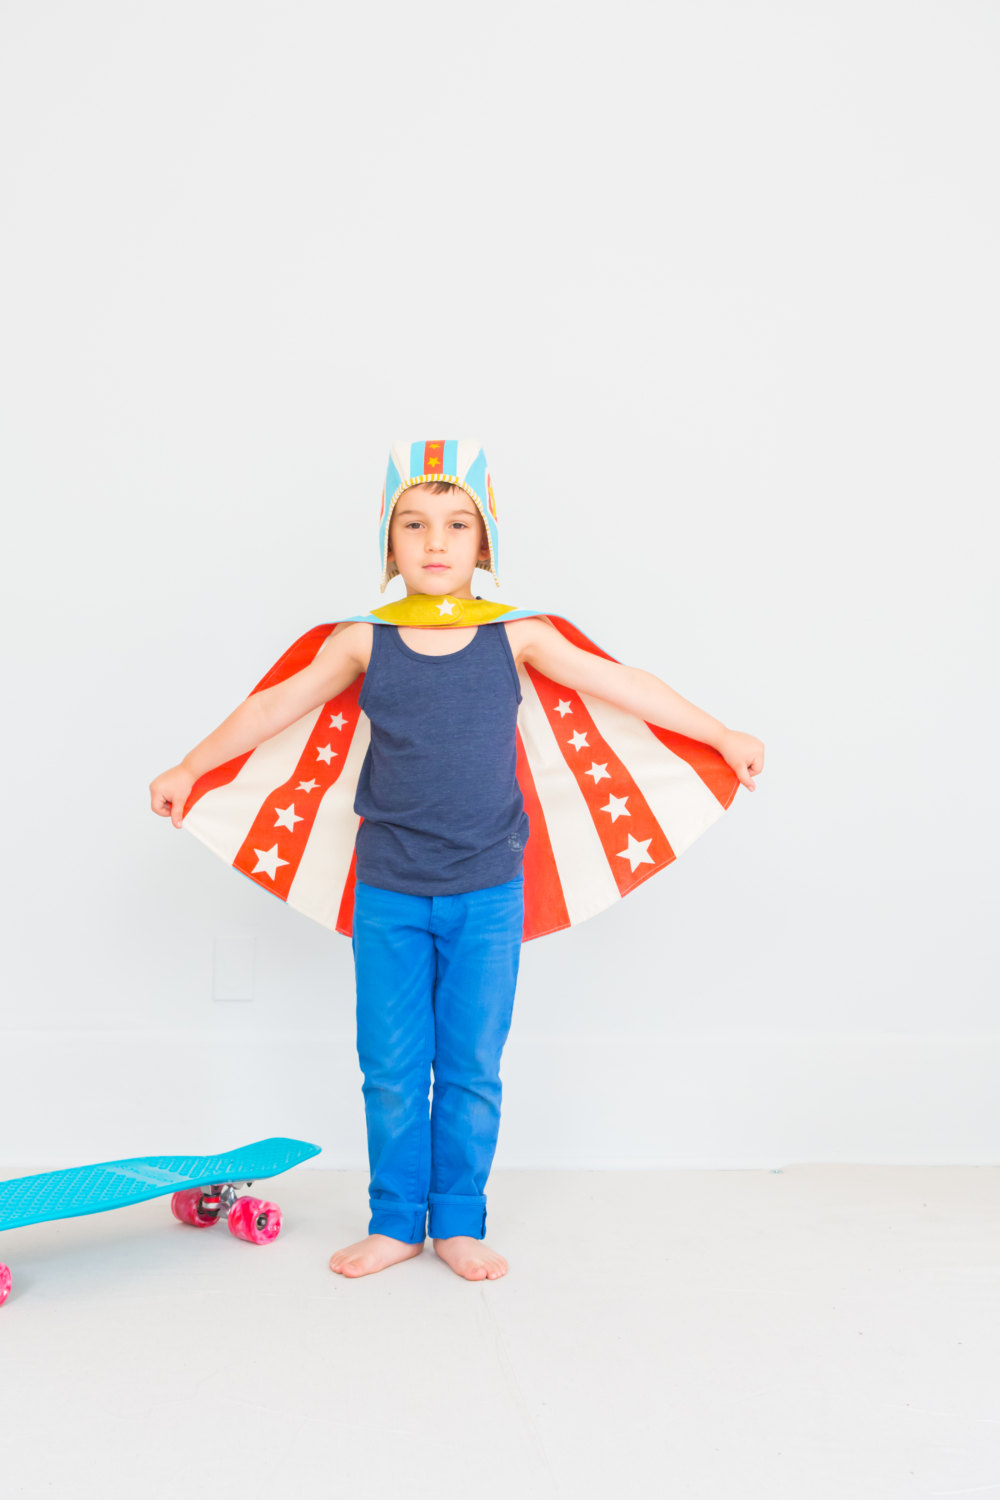 Lovelane's capes and adventure-wear for kids